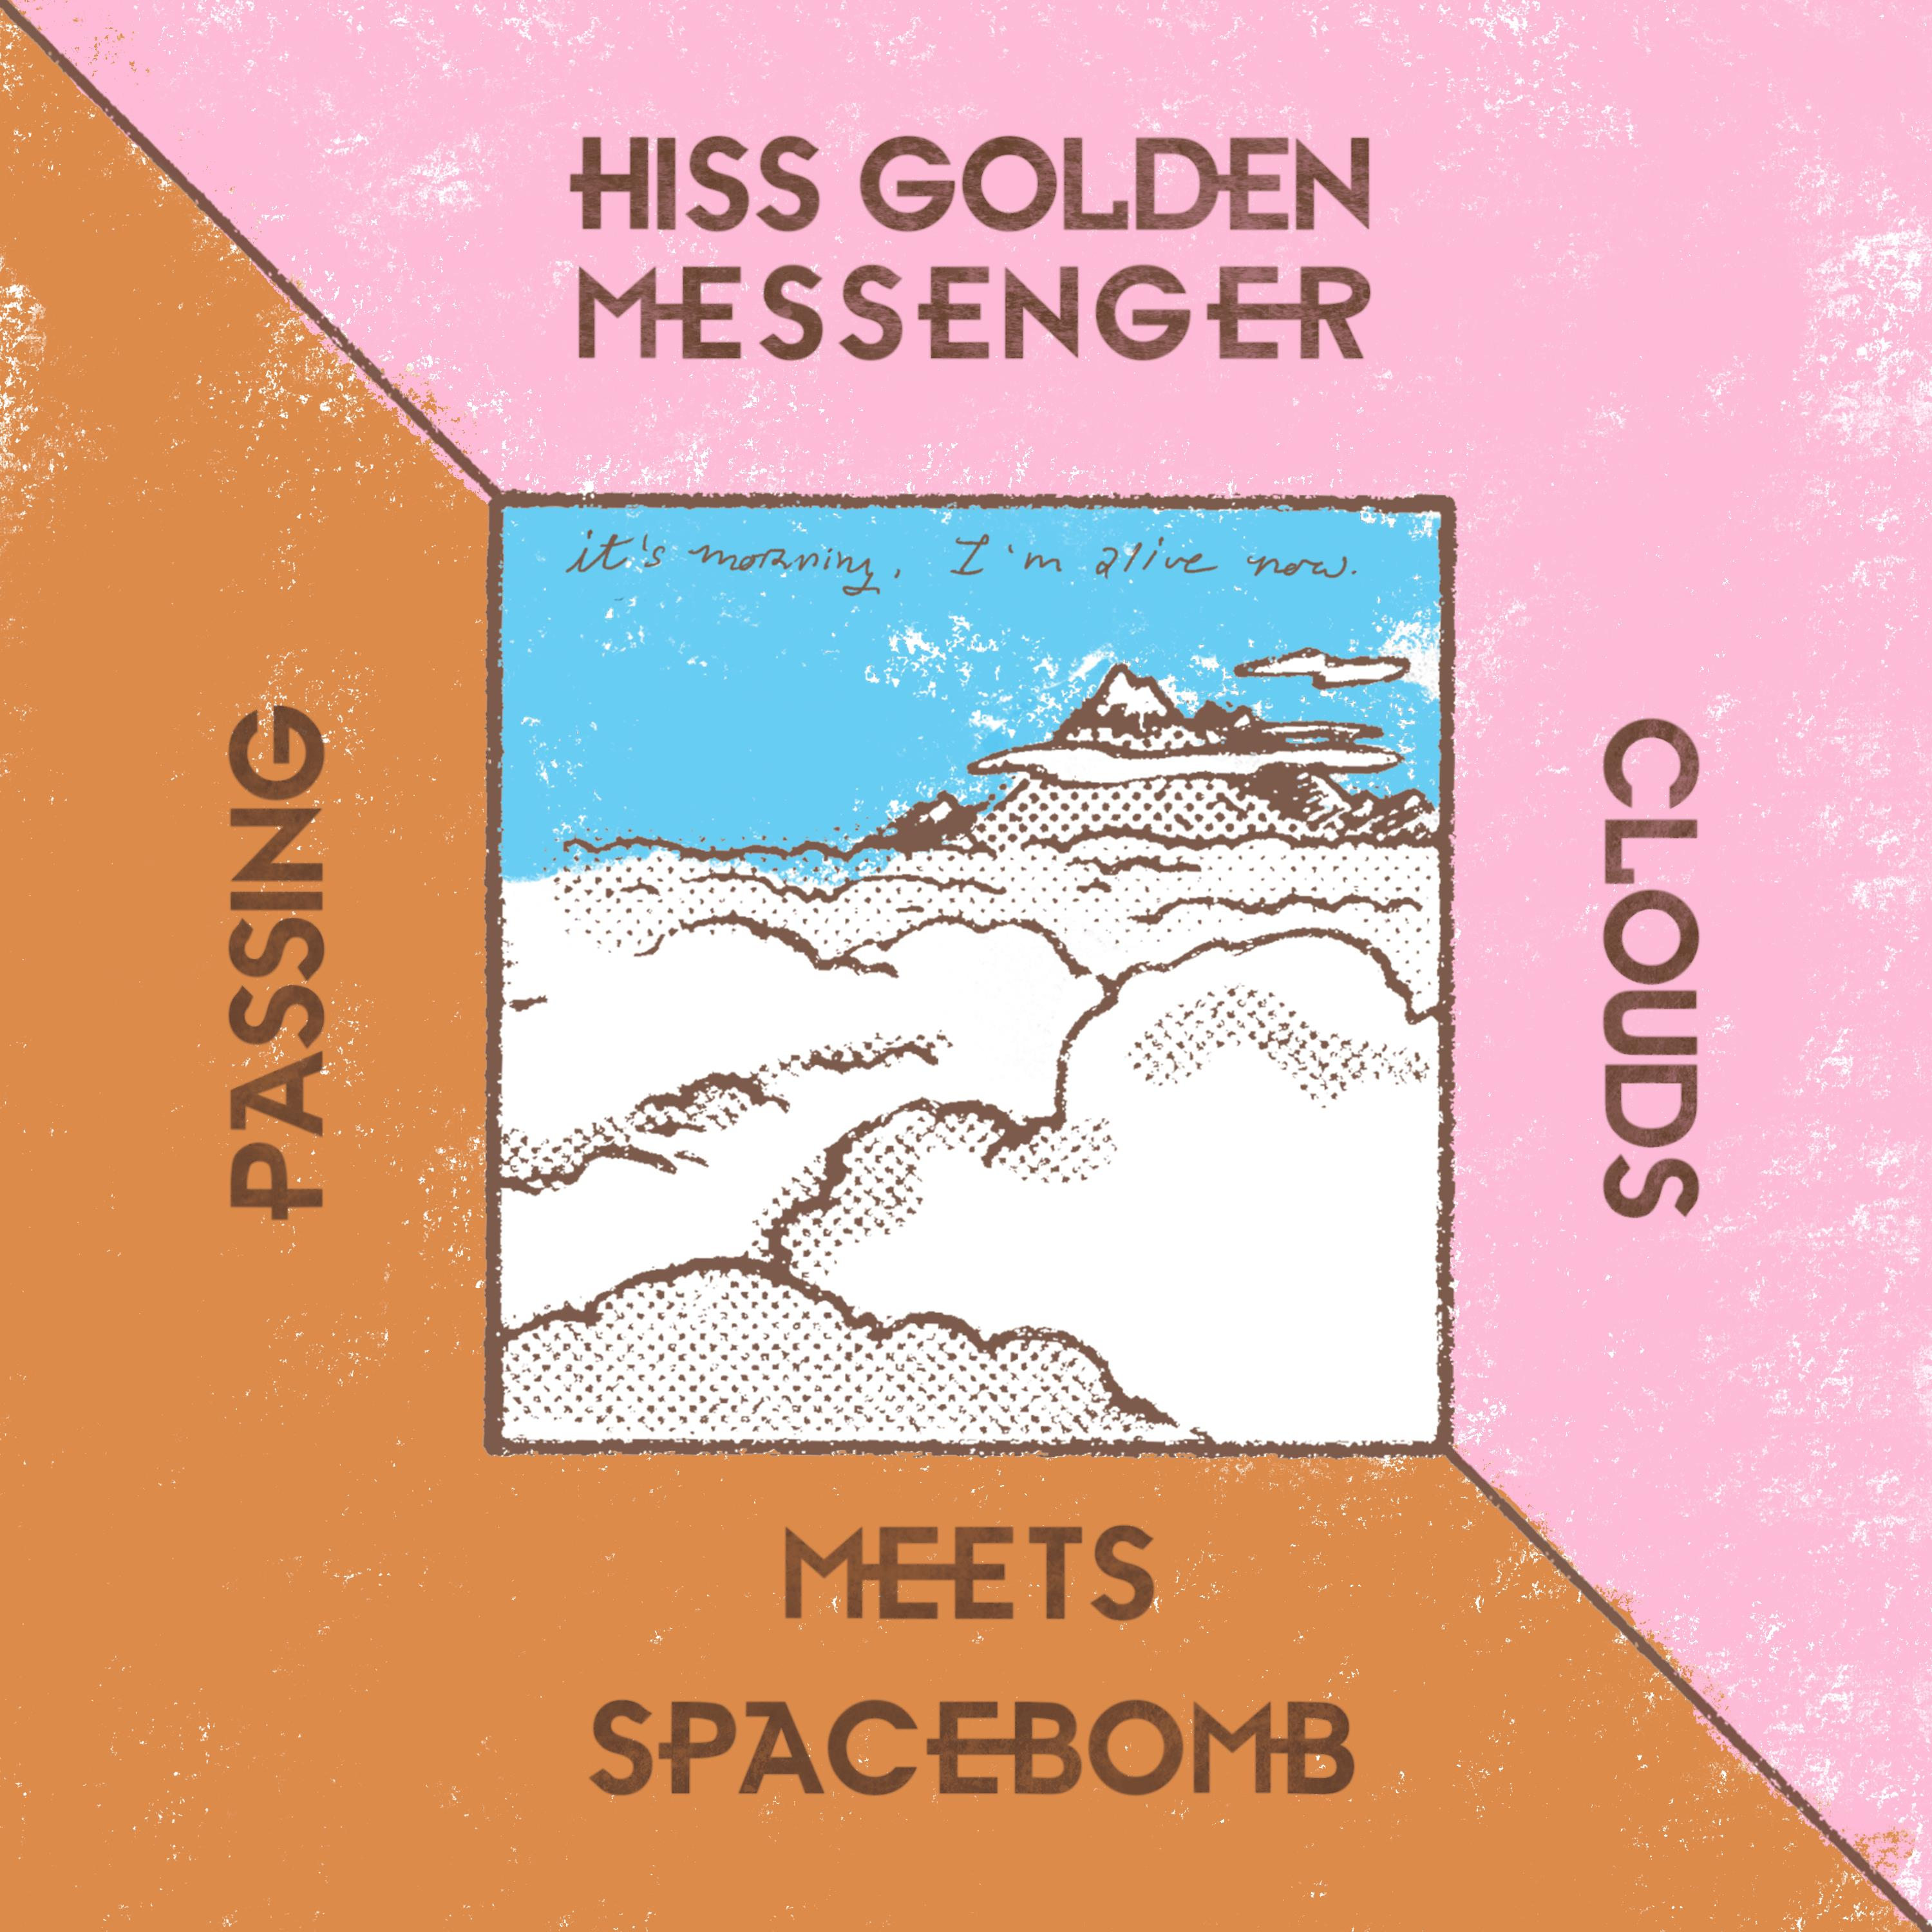 Hiss Golden Massenger